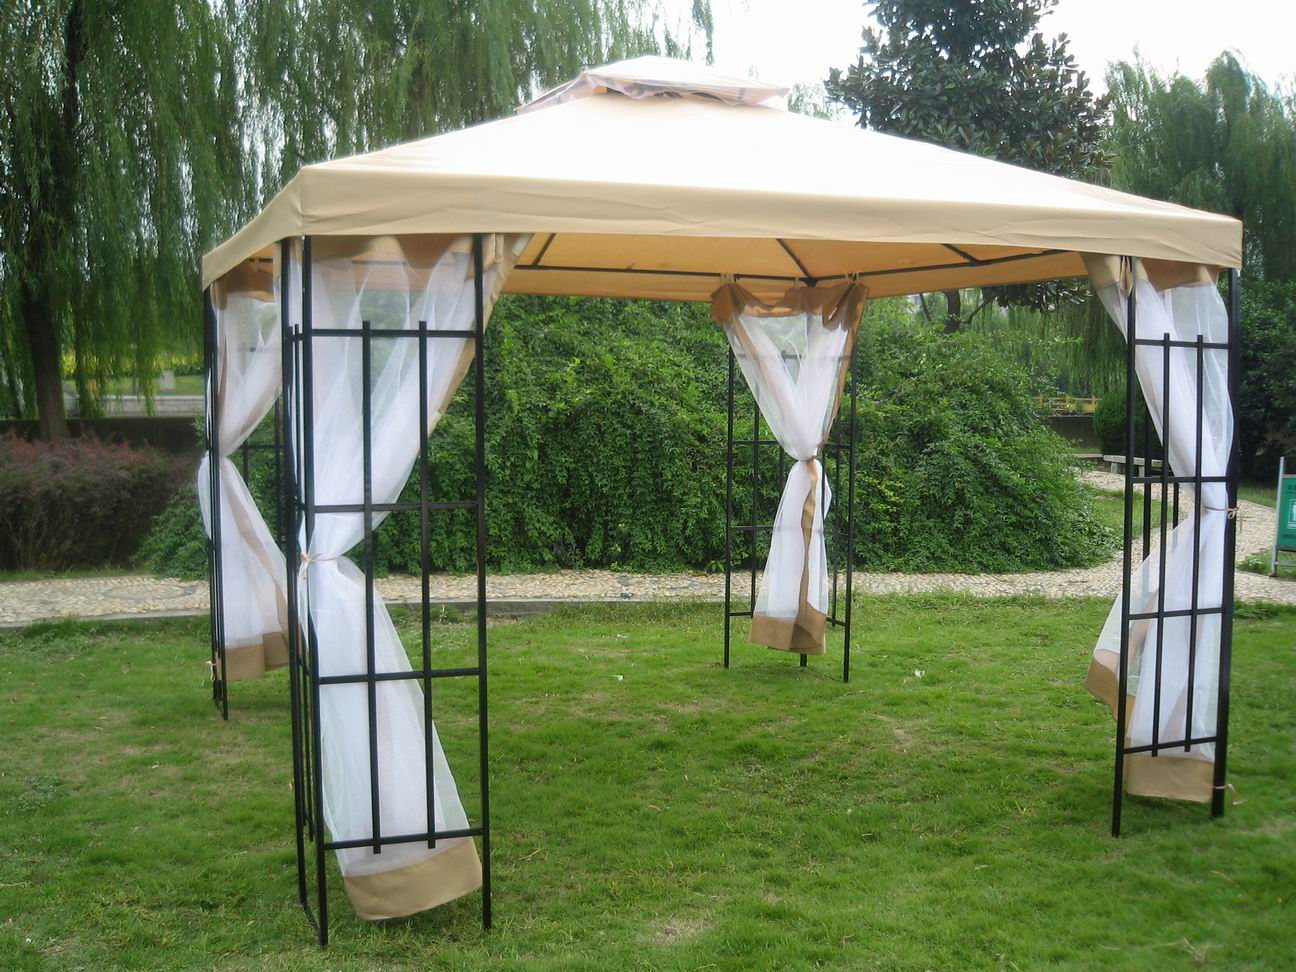 patio tents uk & patio tents uk » Design and Ideas